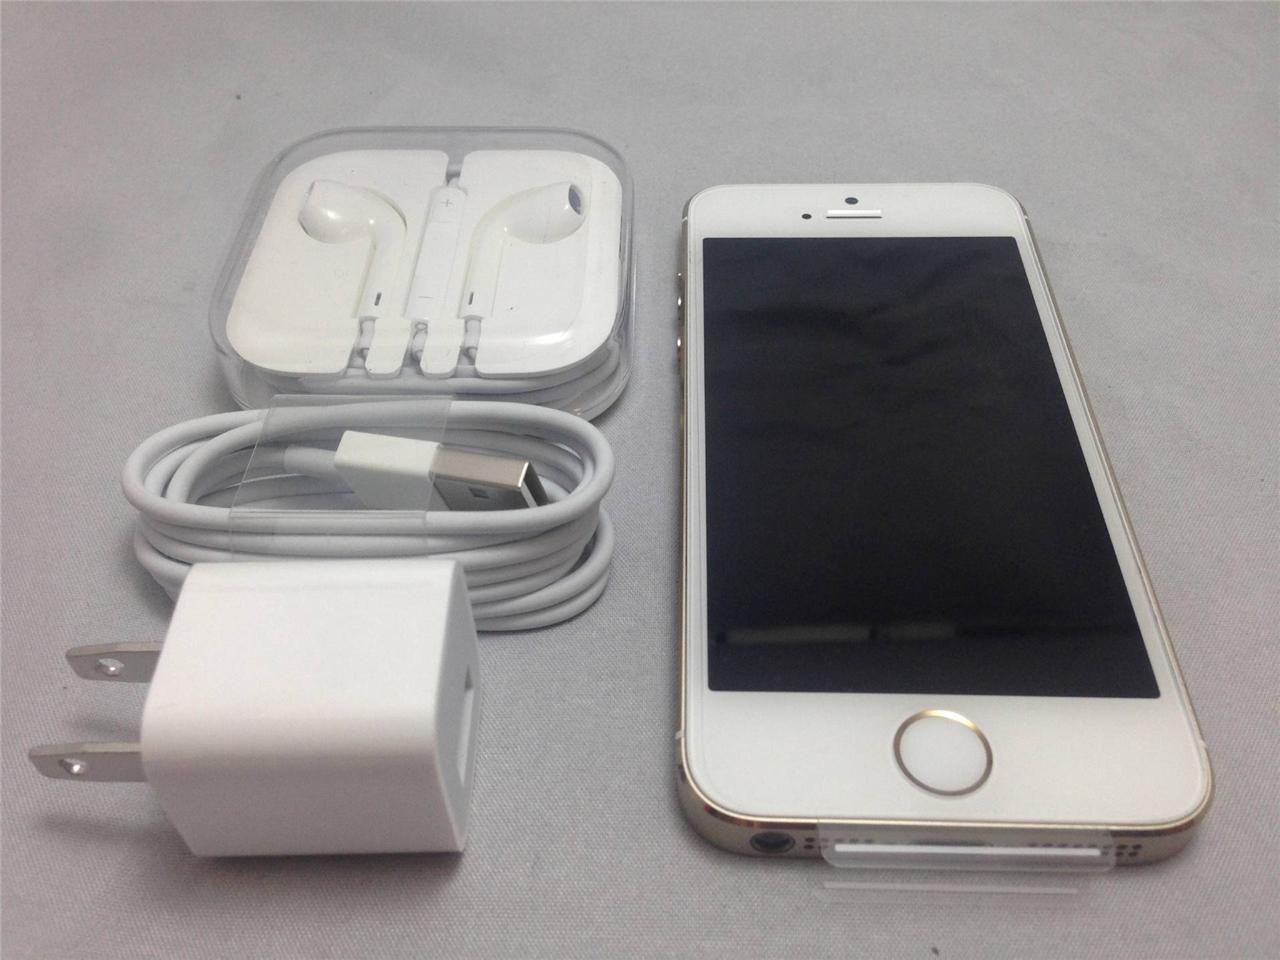 Apple iphone 5s 16gb t mobile price in bangladesh